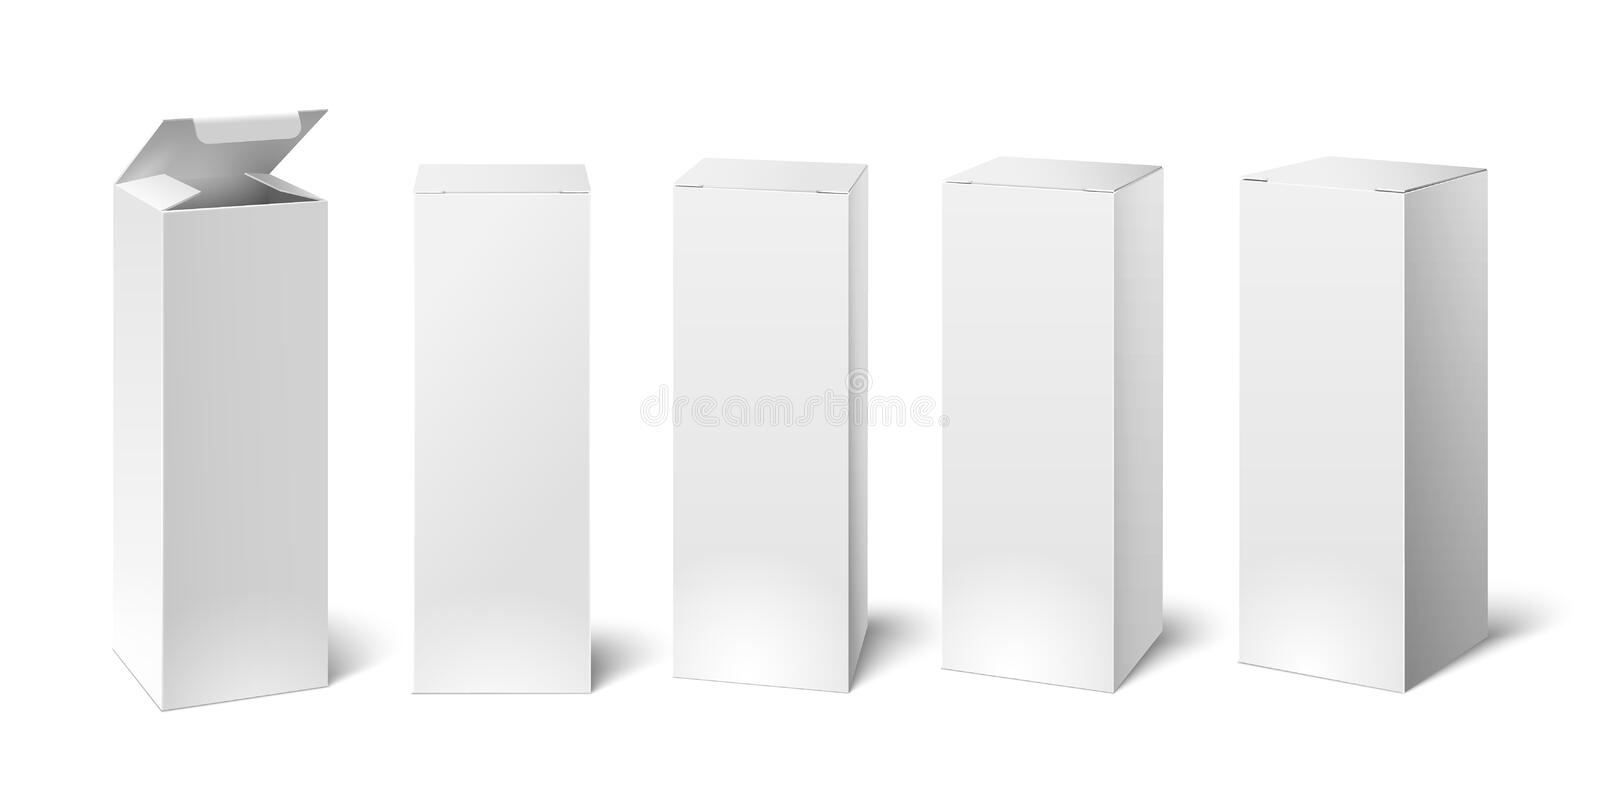 High white cardboard box mockup. Set of cosmetic or medical packaging, paper boxes. Vector illustration stock illustration